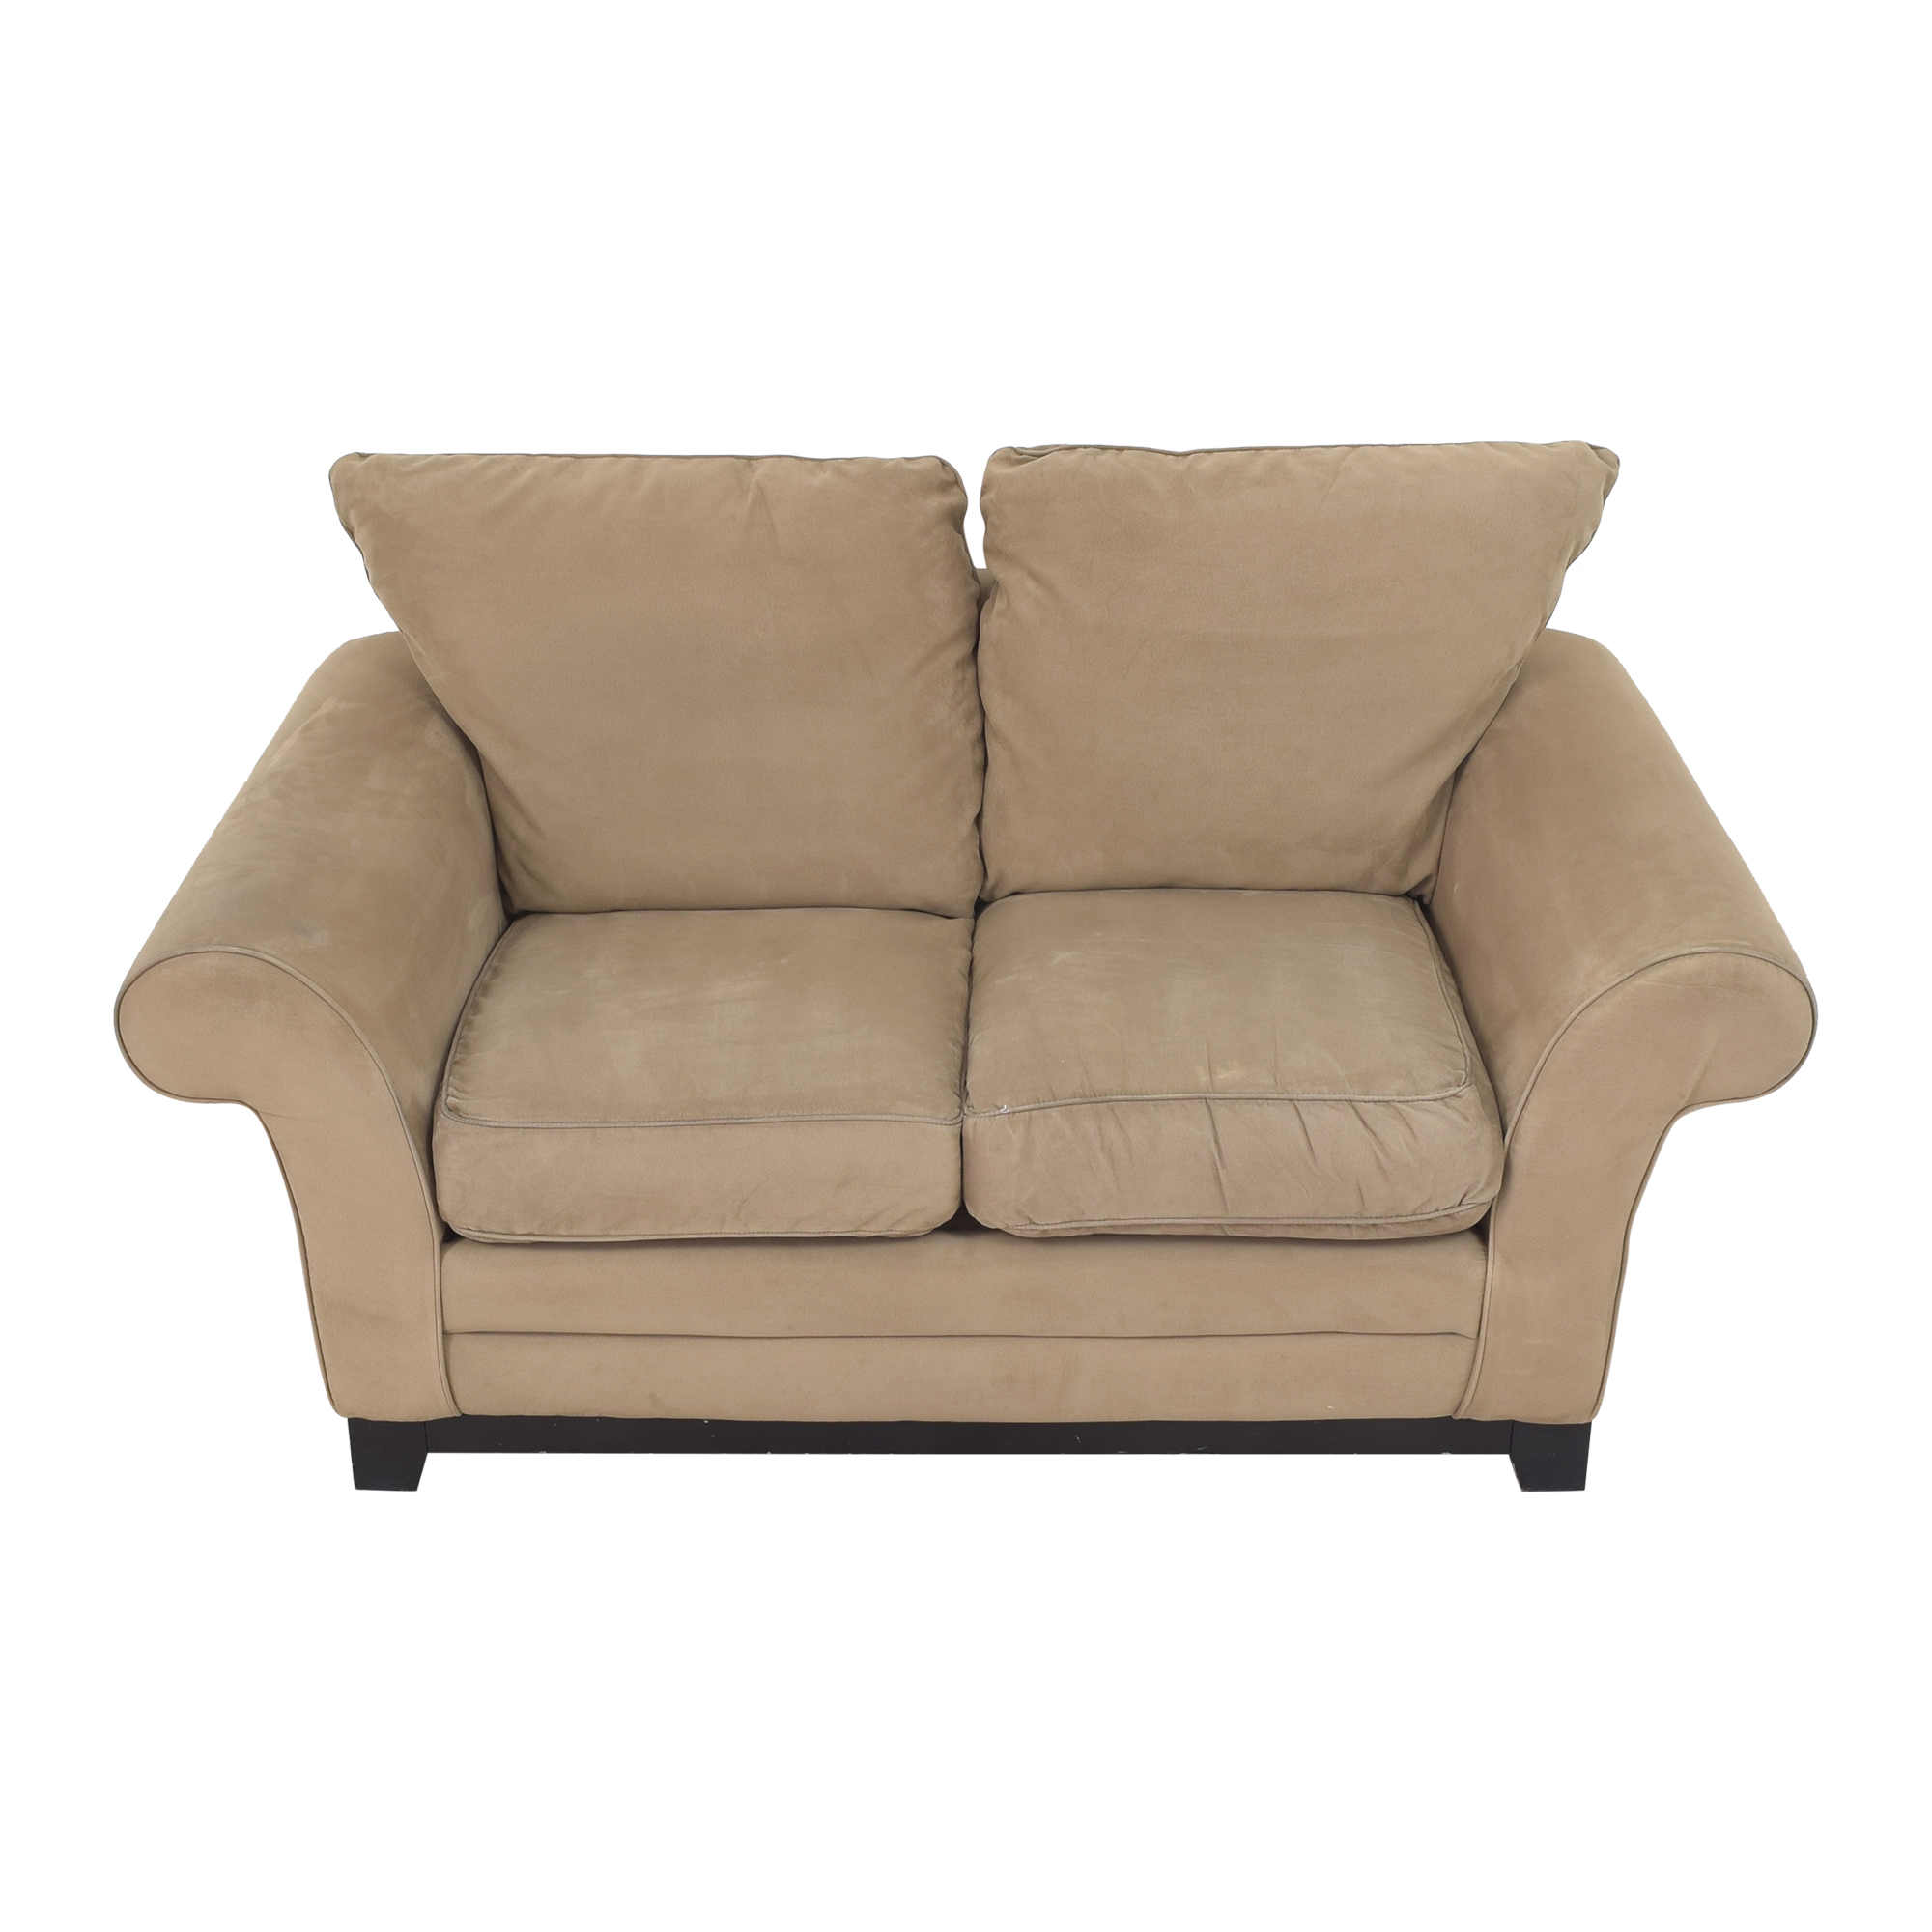 Robinson & Robinson Robinson & Robinson Roll Arm Loveseat for sale